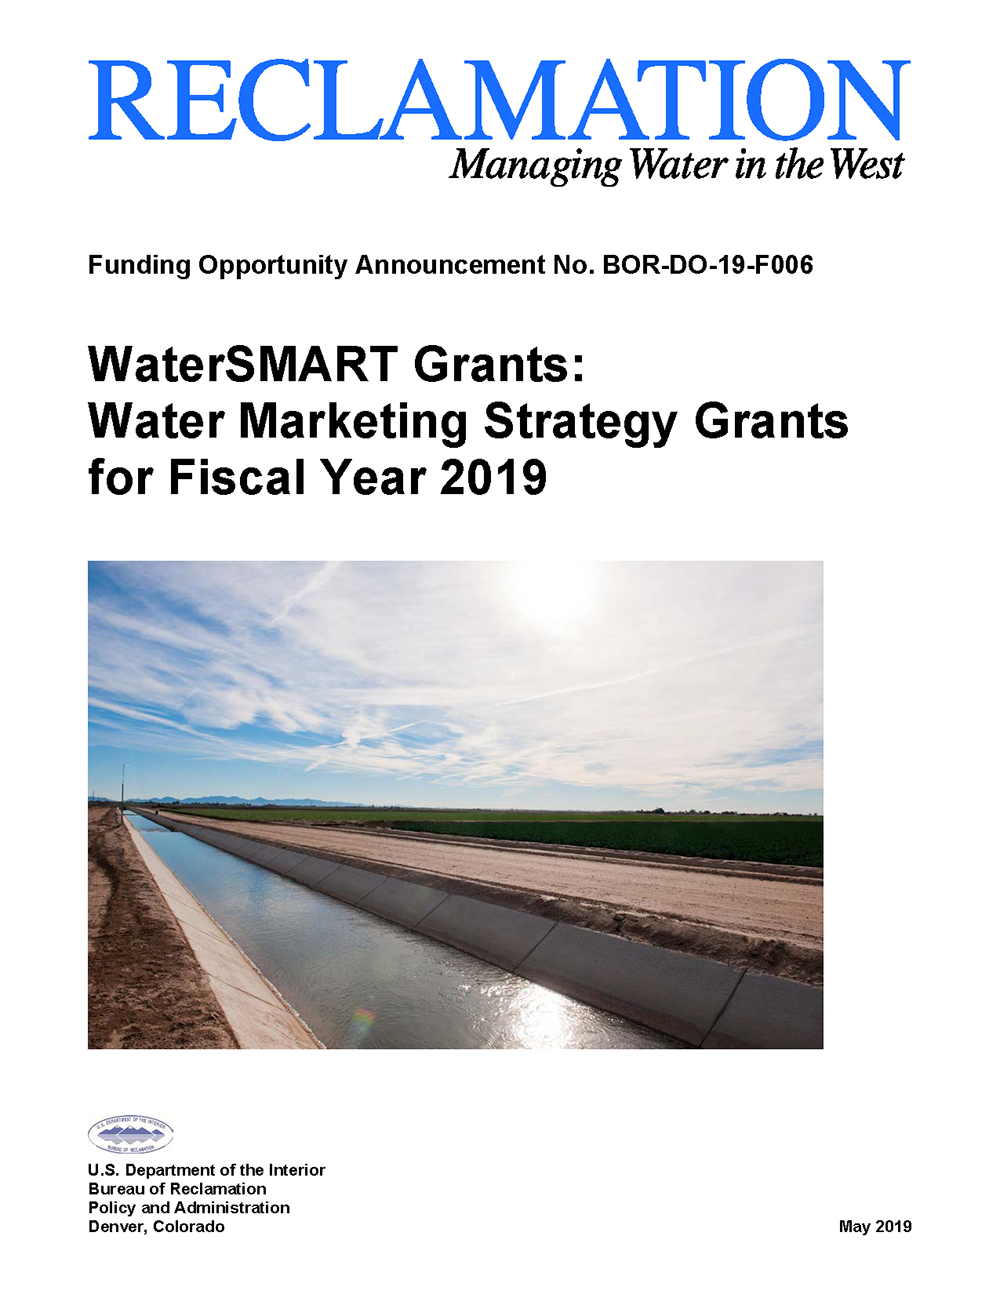 2019 Water Marketing Funding Opportunity